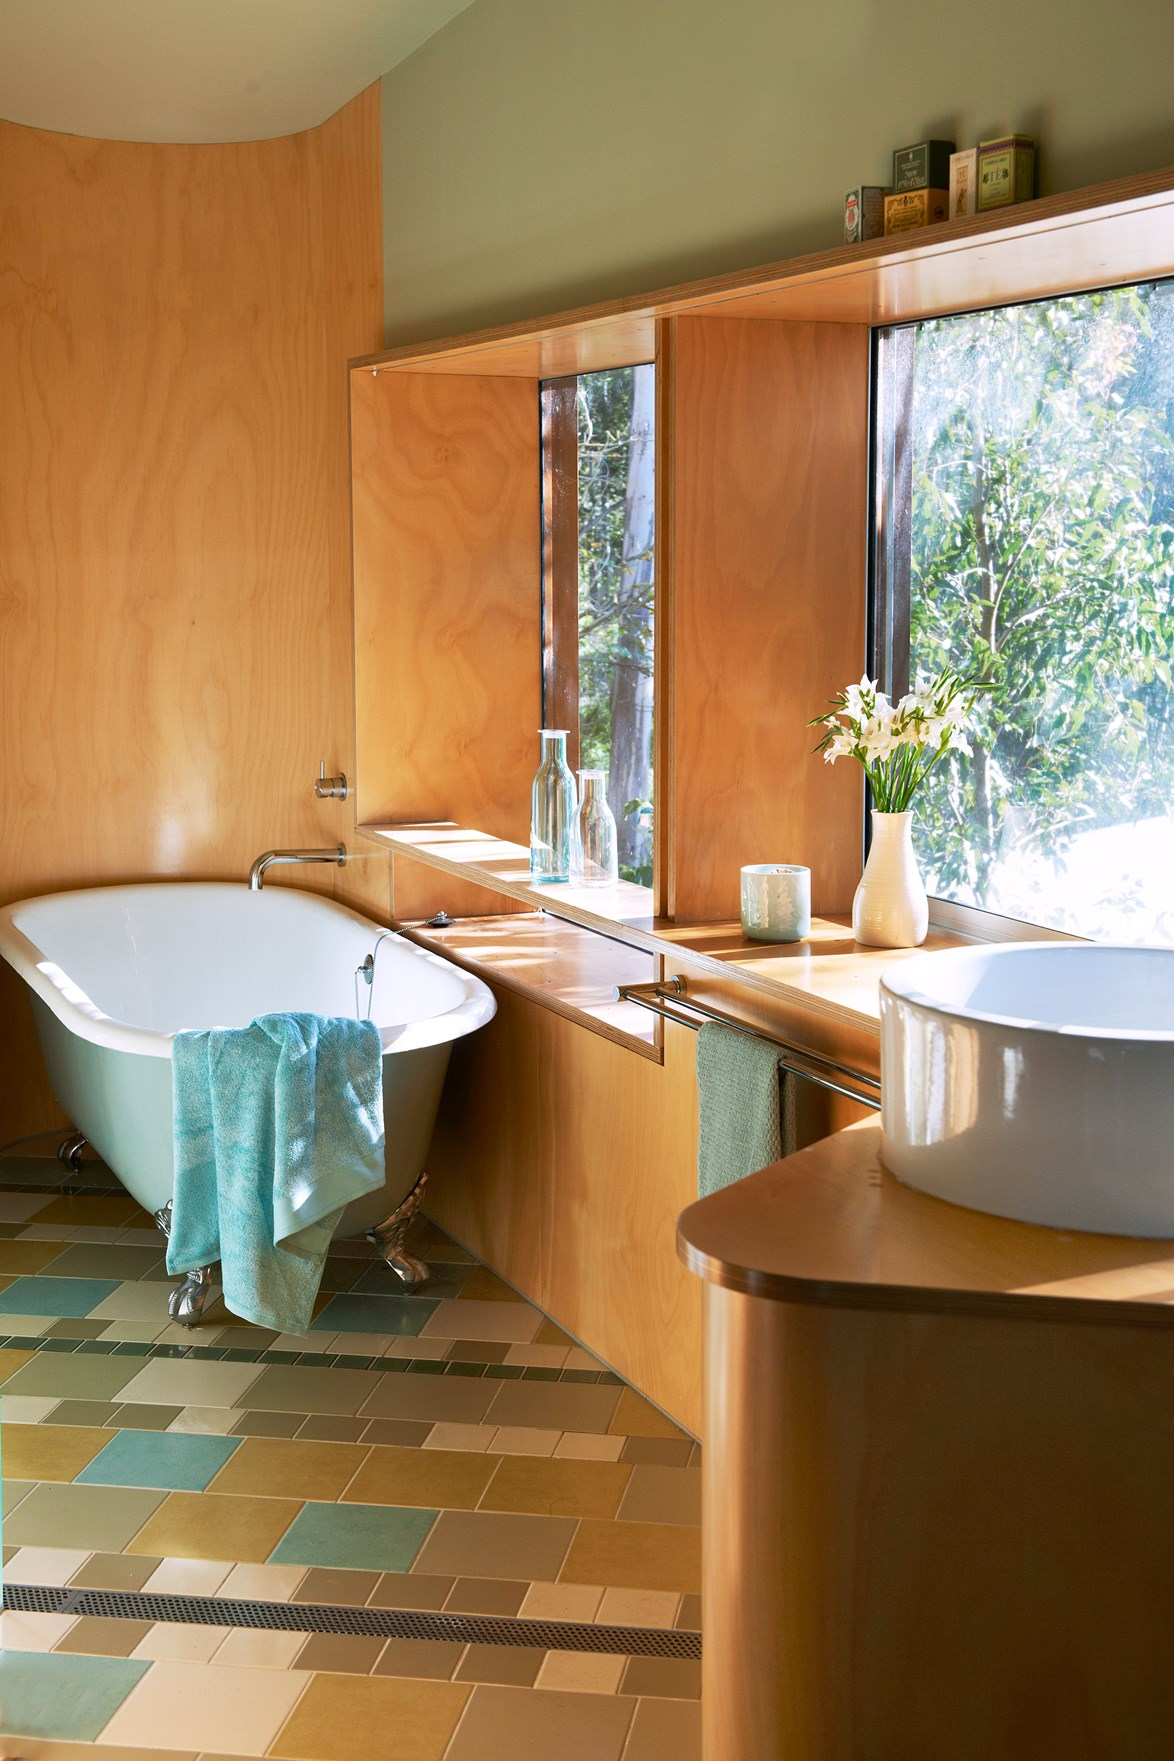 "Eucalyptus greens and rich timbers form the basis of this contemporary country bathroom at a [1960s renovated beach house](https://www.homestolove.com.au/gallery-janes-1960s-style-beach-house-renovation-1690|target=""_blank""). Every room in the home maintains a strong sense of connection to the bush and beach nearby. *Photo: Brigid Arnott / Styling: Lisa Hilton / Story: Australian House & Garden*"